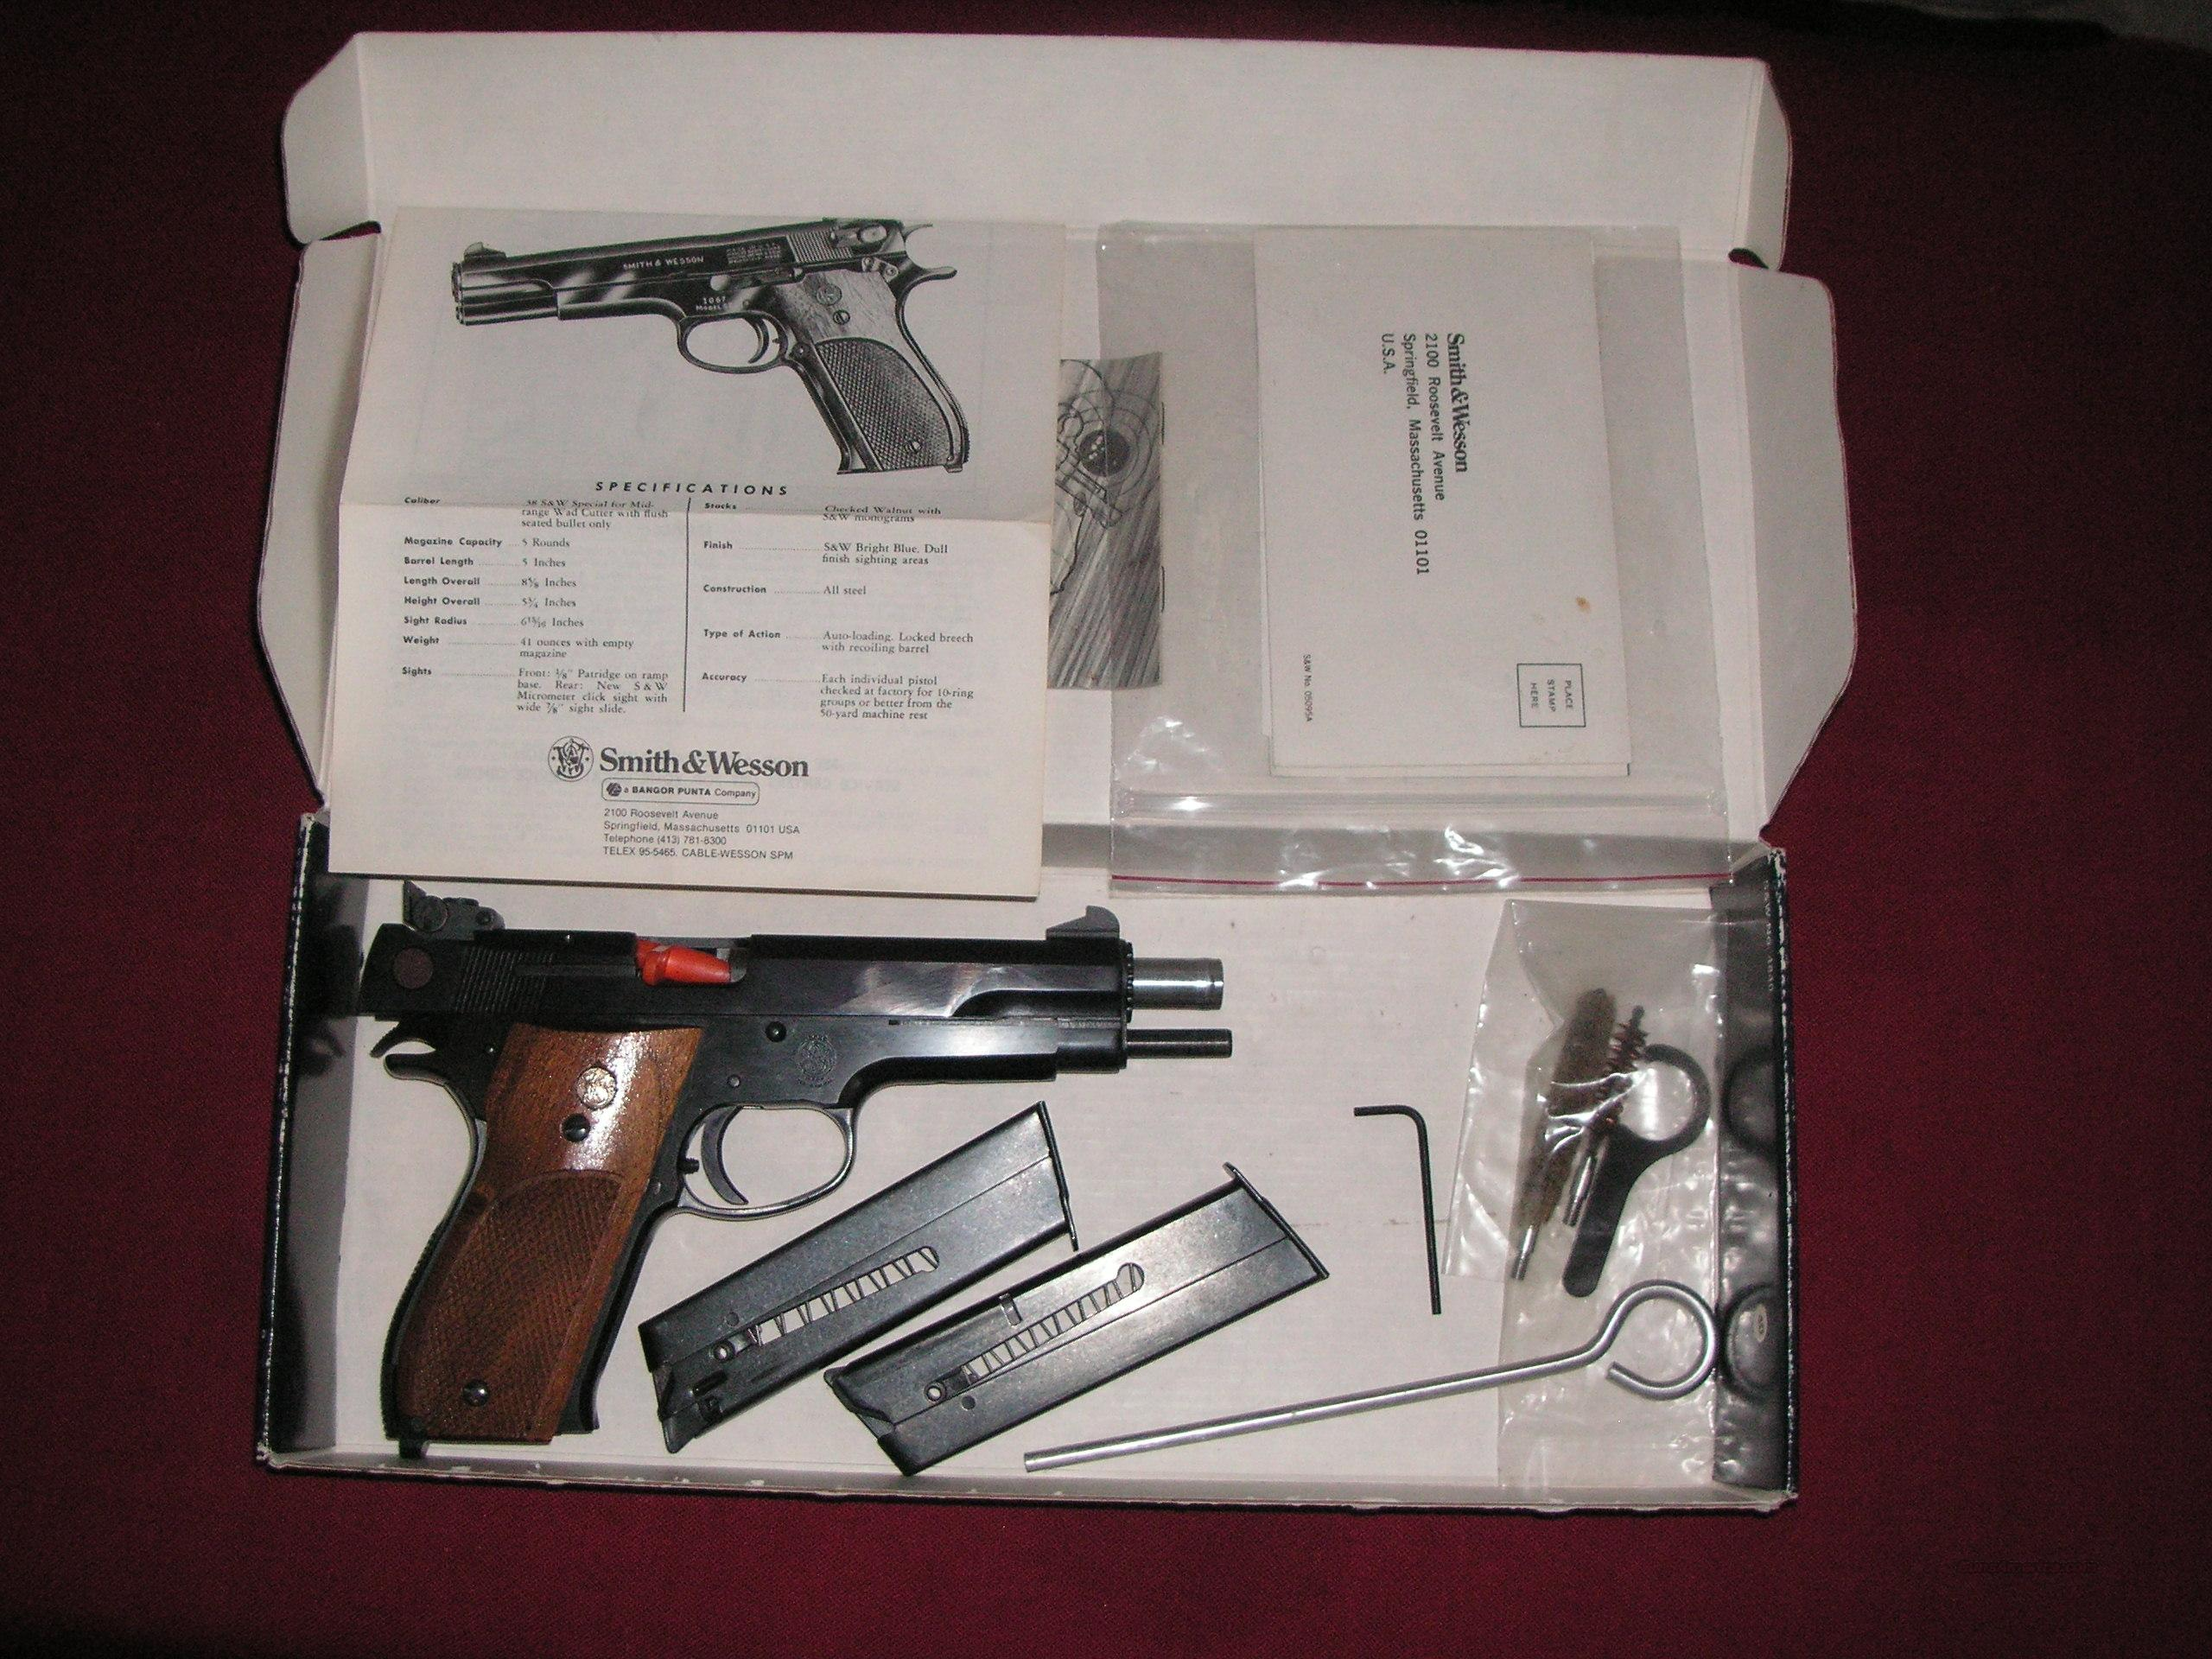 Smith $ Wesson model 52-2 38Spl.  Guns > Pistols > Smith & Wesson Pistols - Autos > Alloy Frame